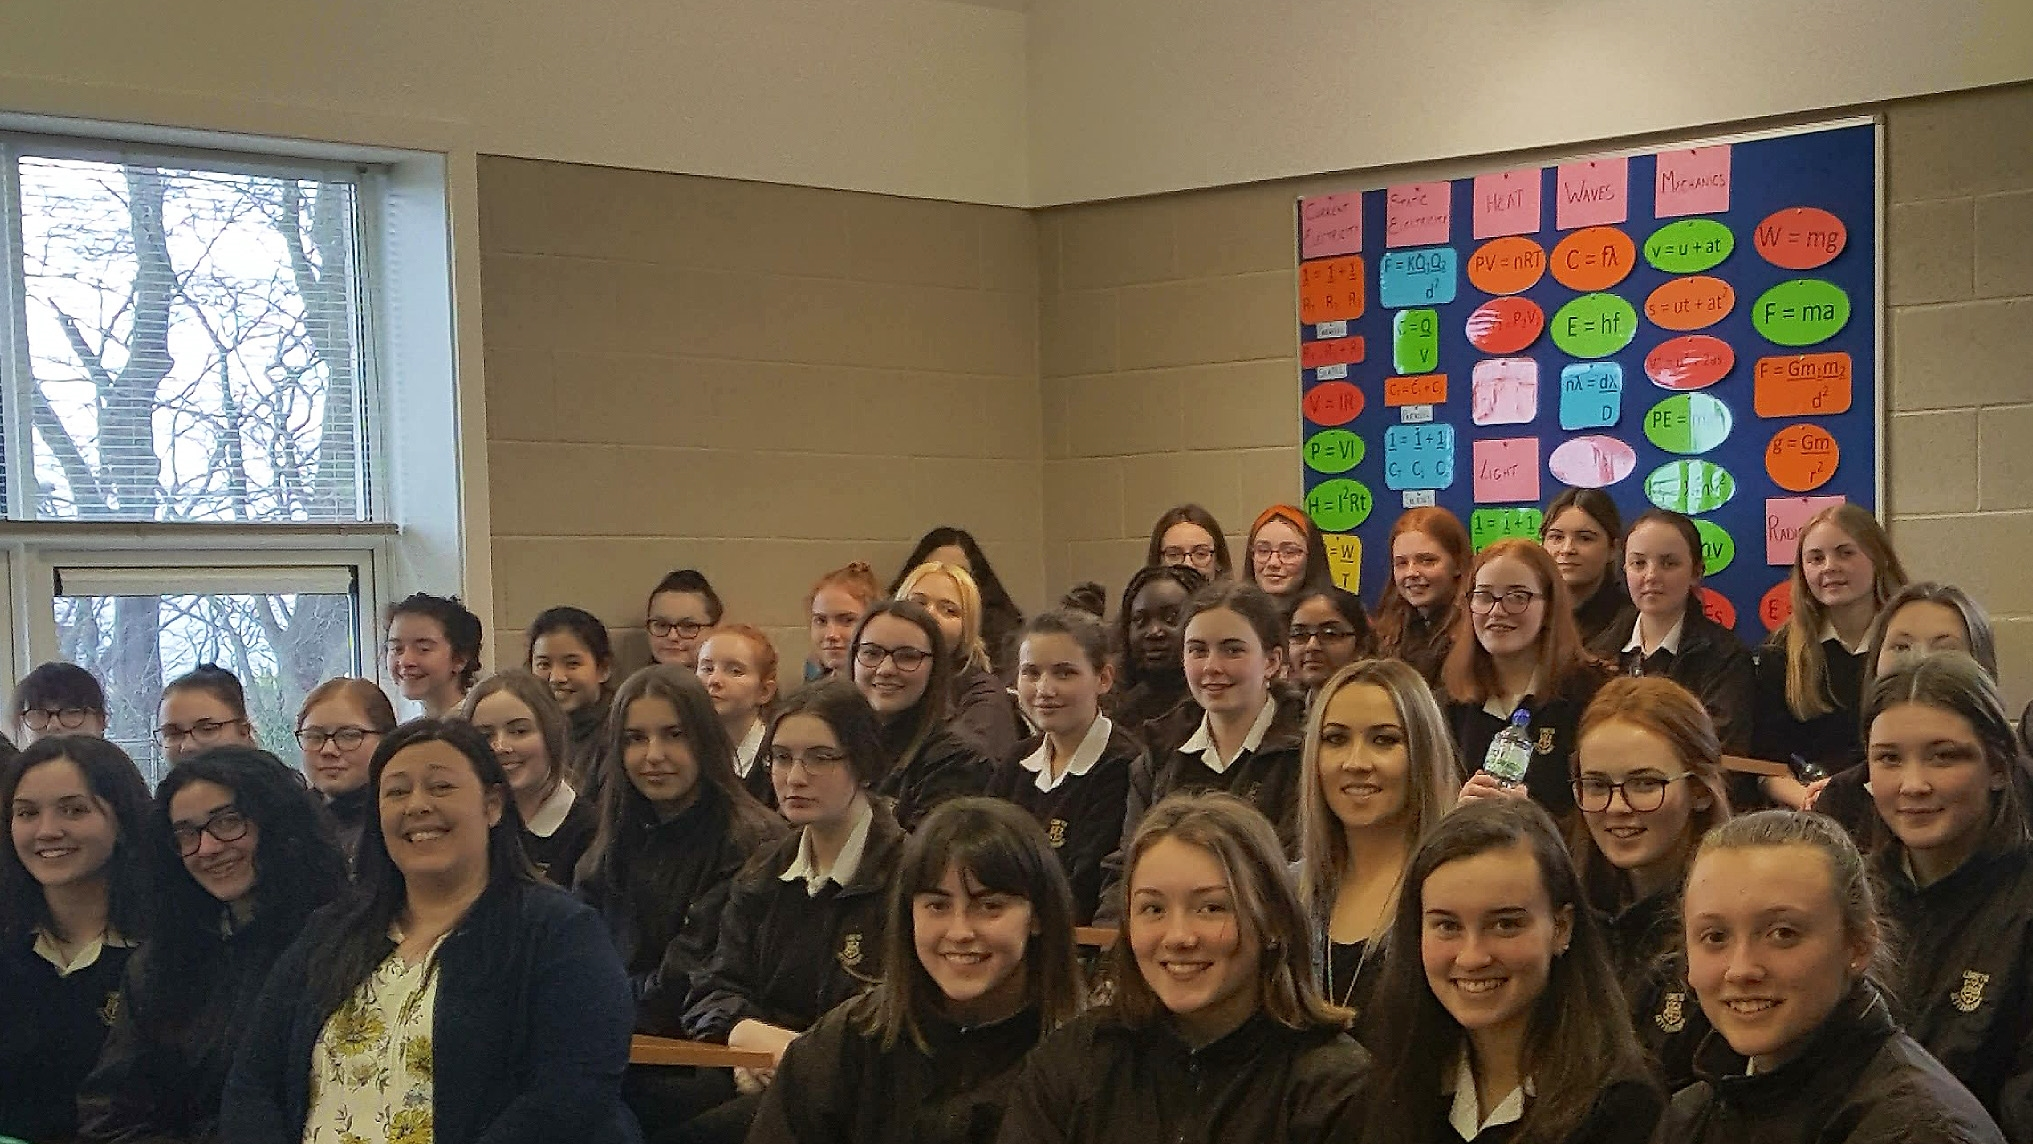 ICT/FinTech experts are inspiring students in Donegal